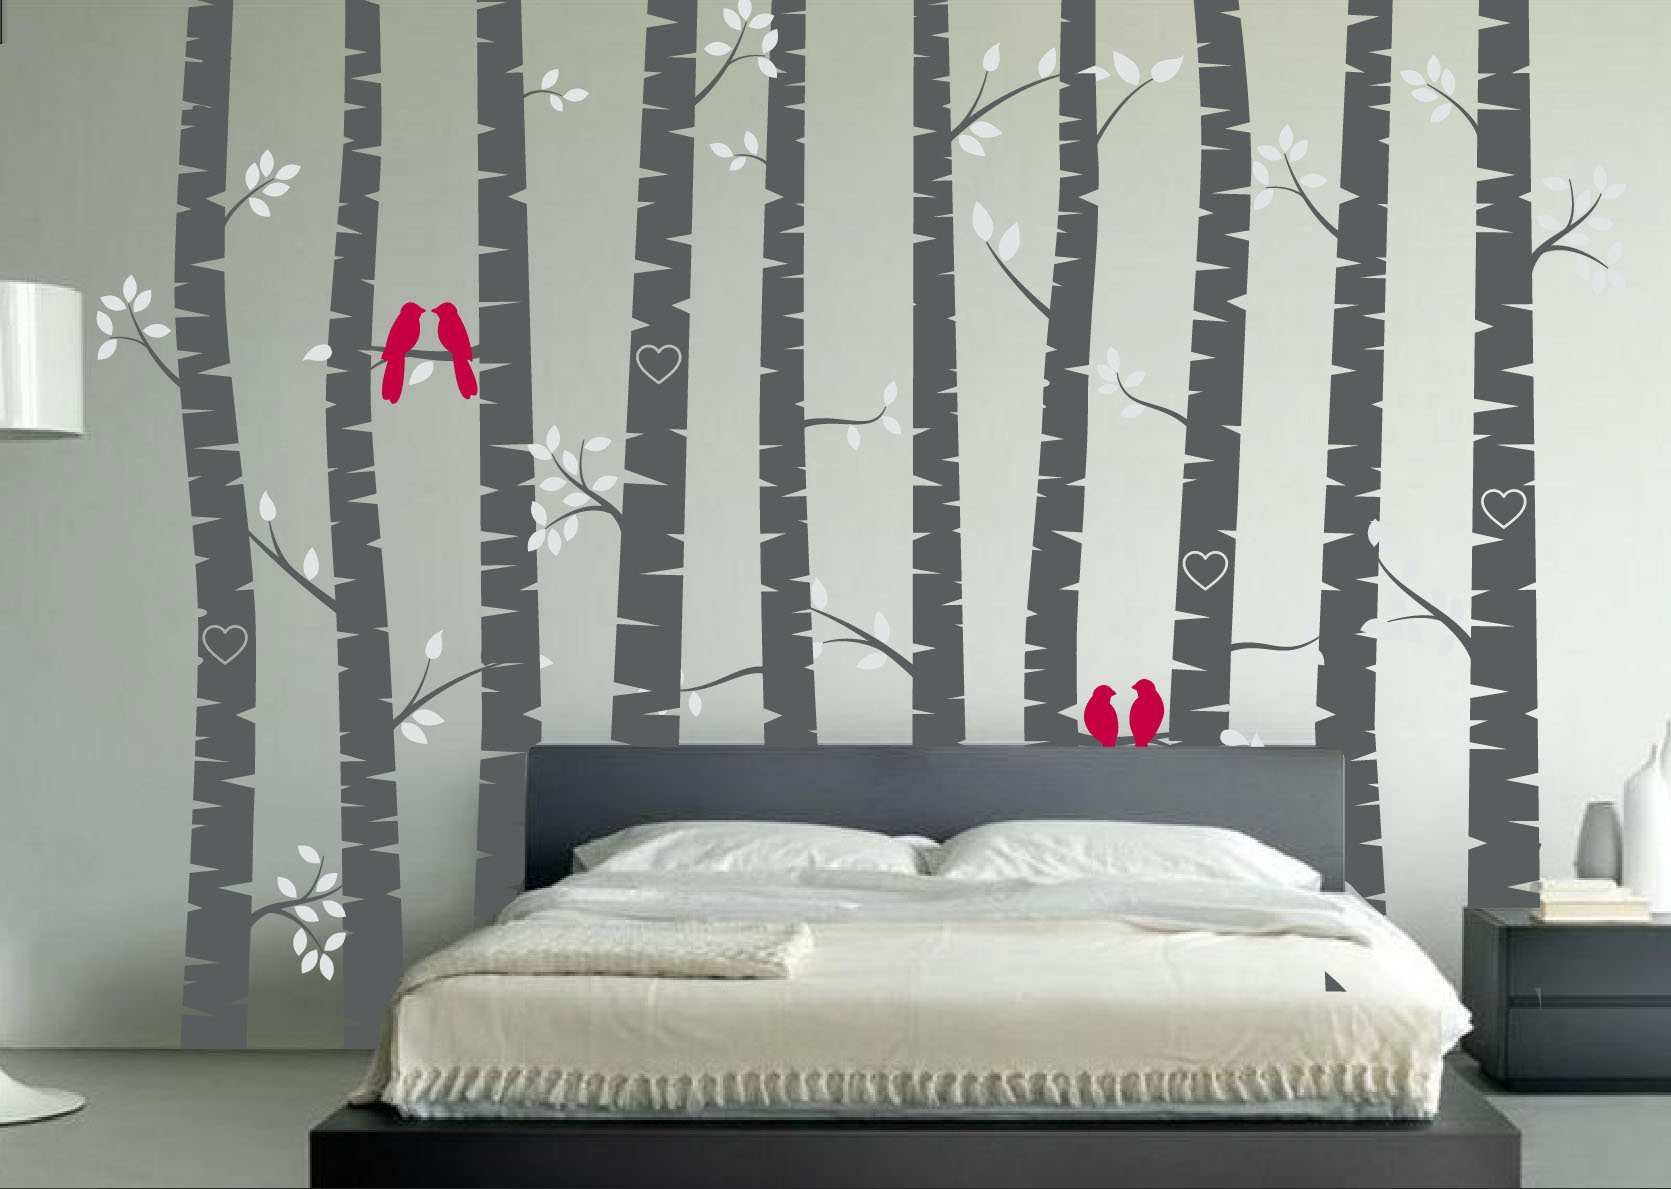 1272-birch-tree-decals-bedroom.jpg